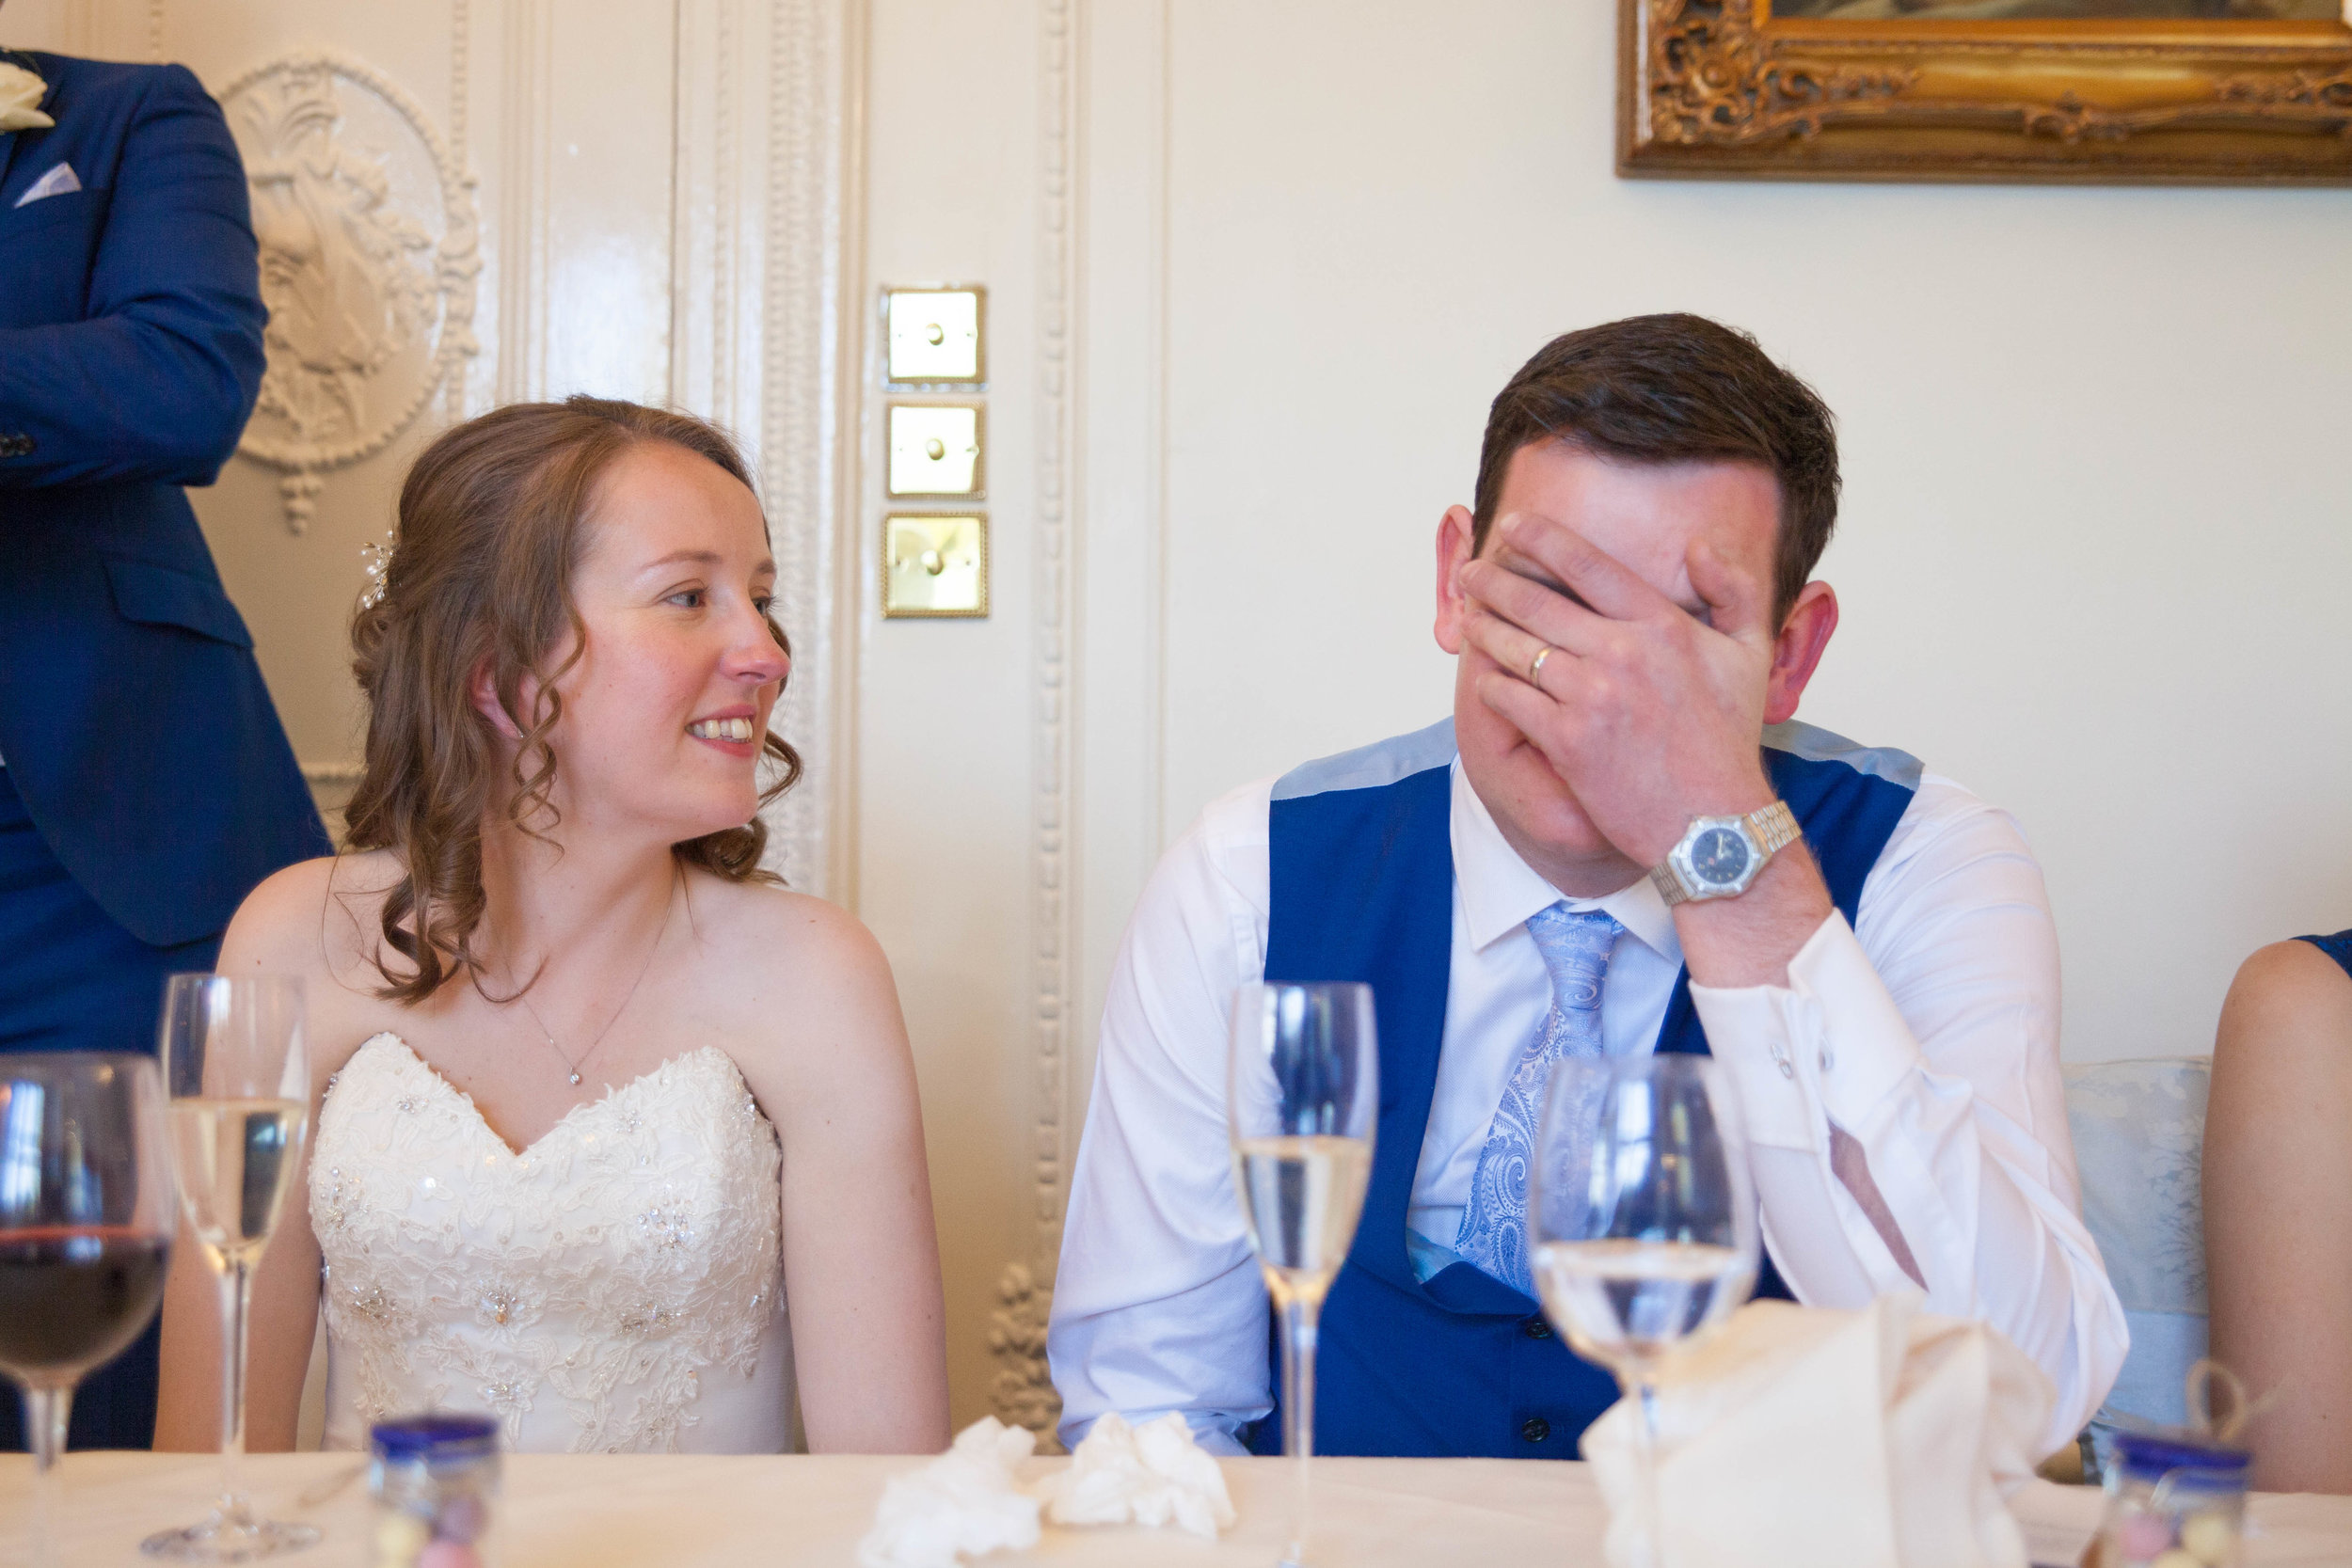 NLPhotography_Taplow_House-Wedding_Photographer_Emily&Alan_C-509.jpg